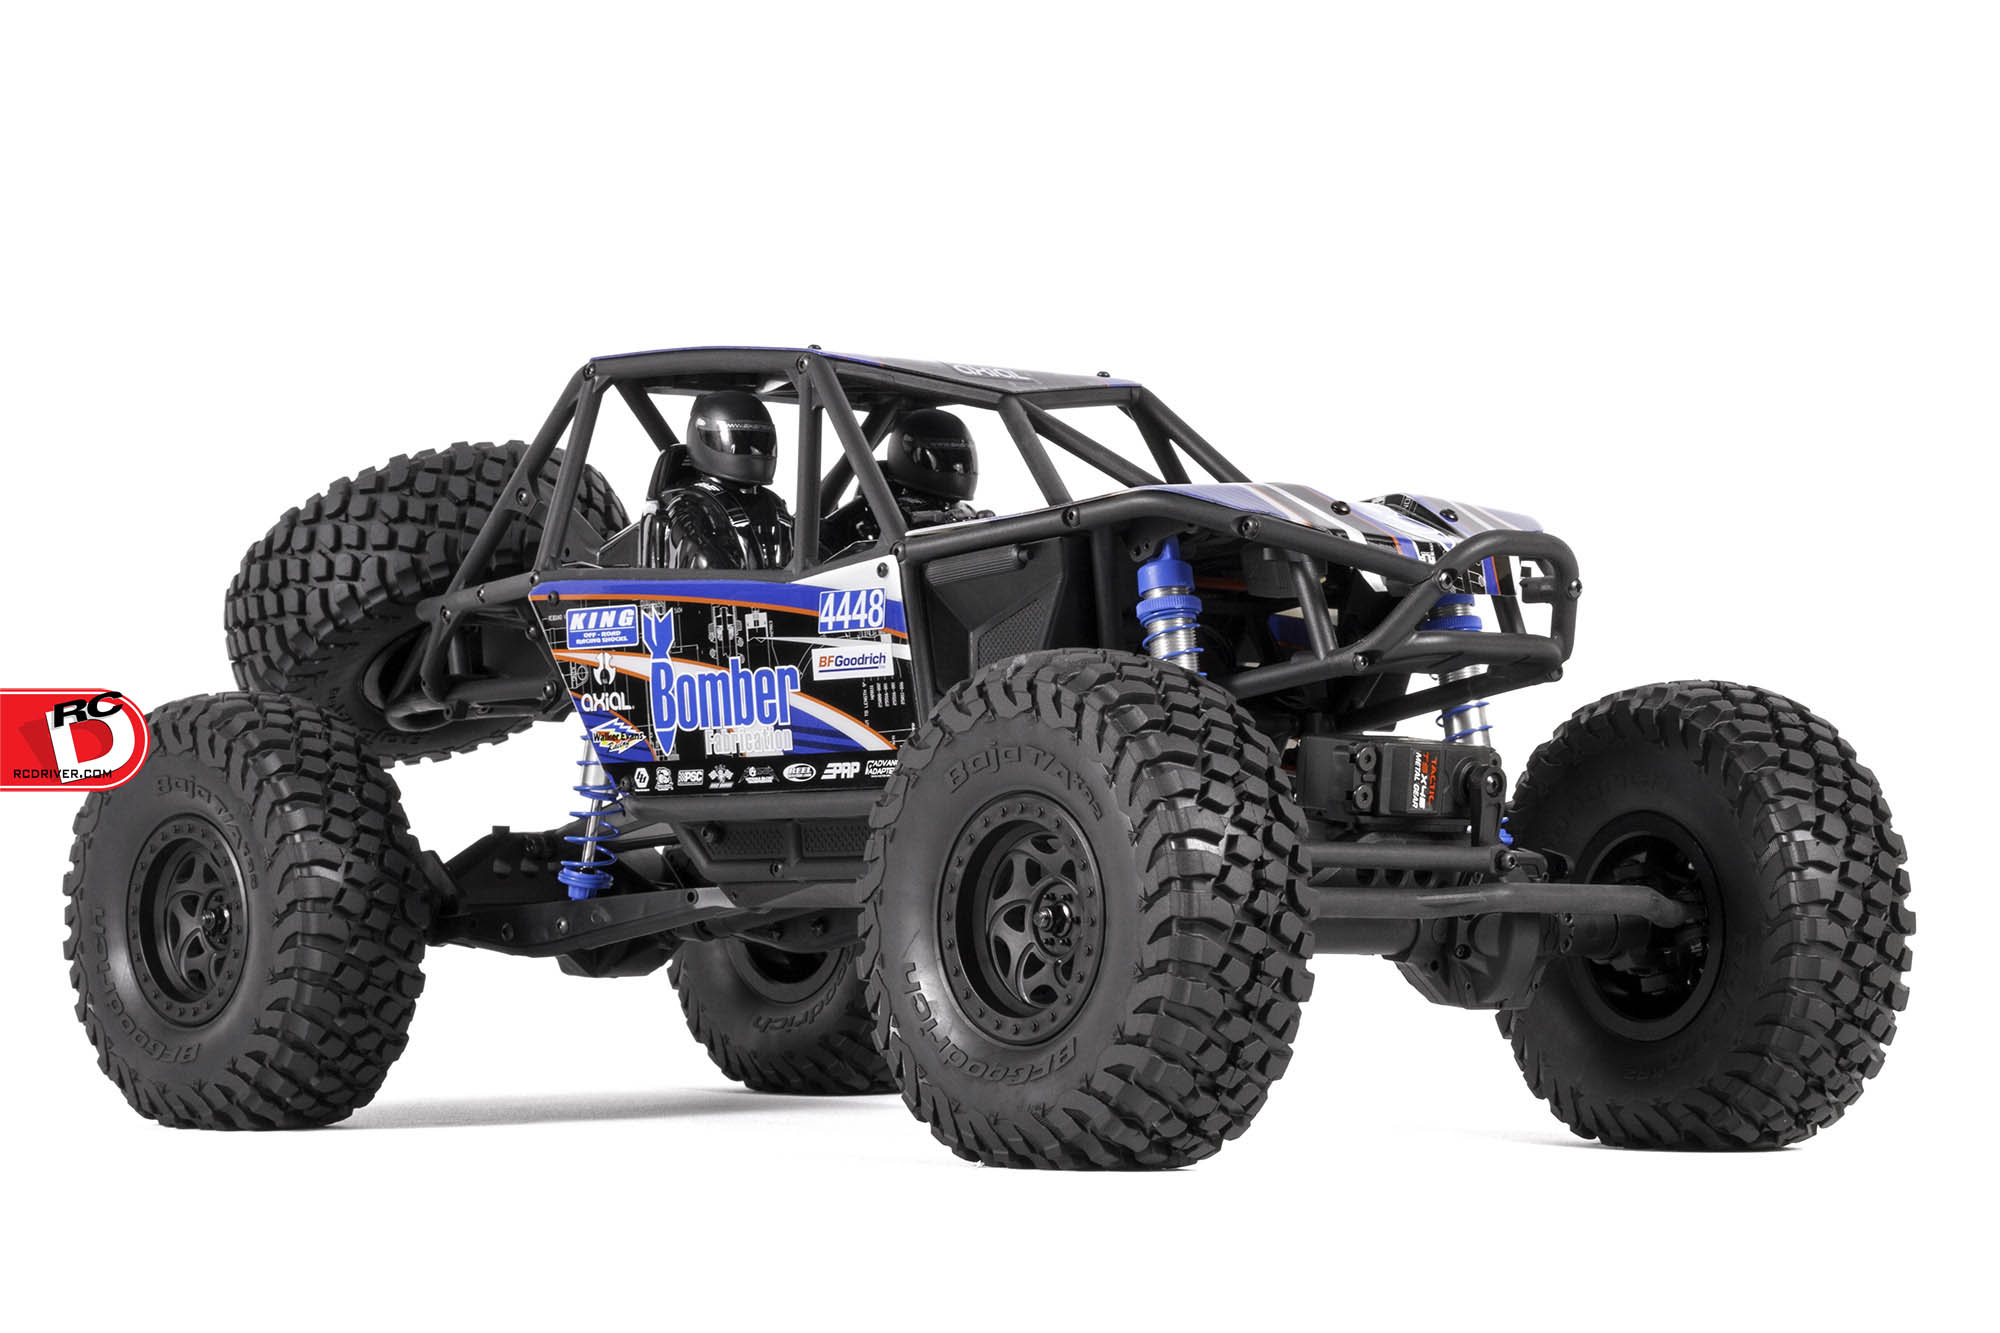 Full Details – The Axial RR10 Bomber